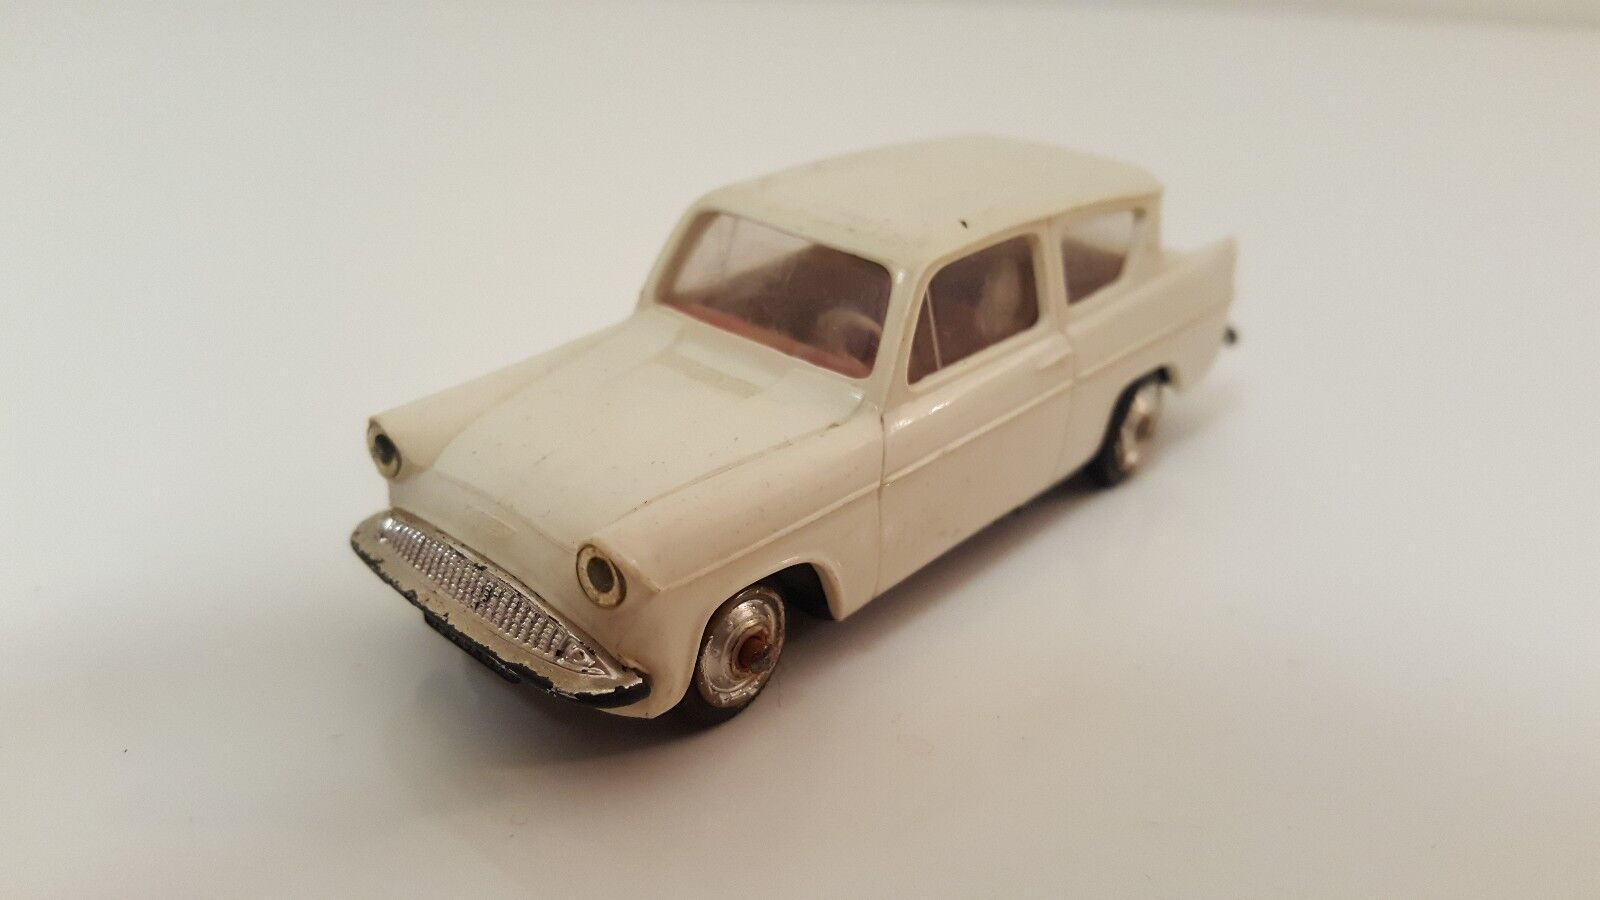 Norev plastique - Ford Ford Ford Anglia 1 43 (Années 60) 4725bc